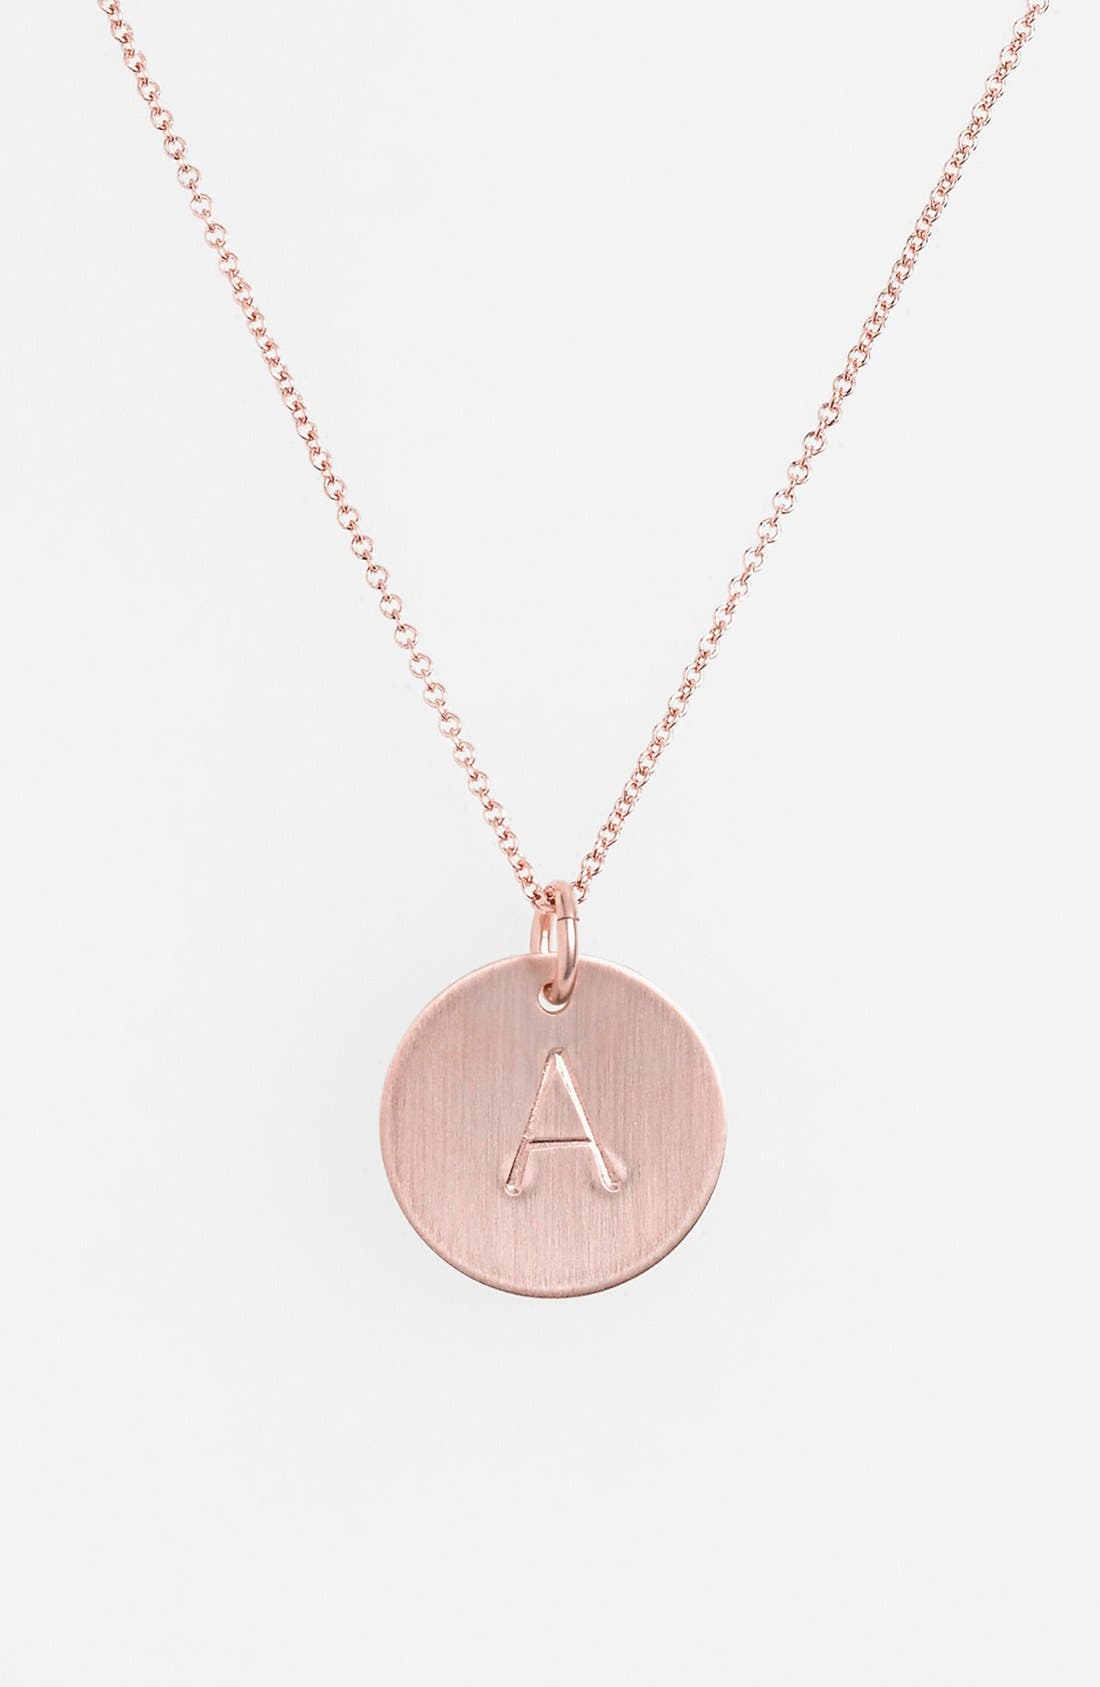 14k-Rose Gold Fill Initial Disc Necklace,                         Main,                         color, 710